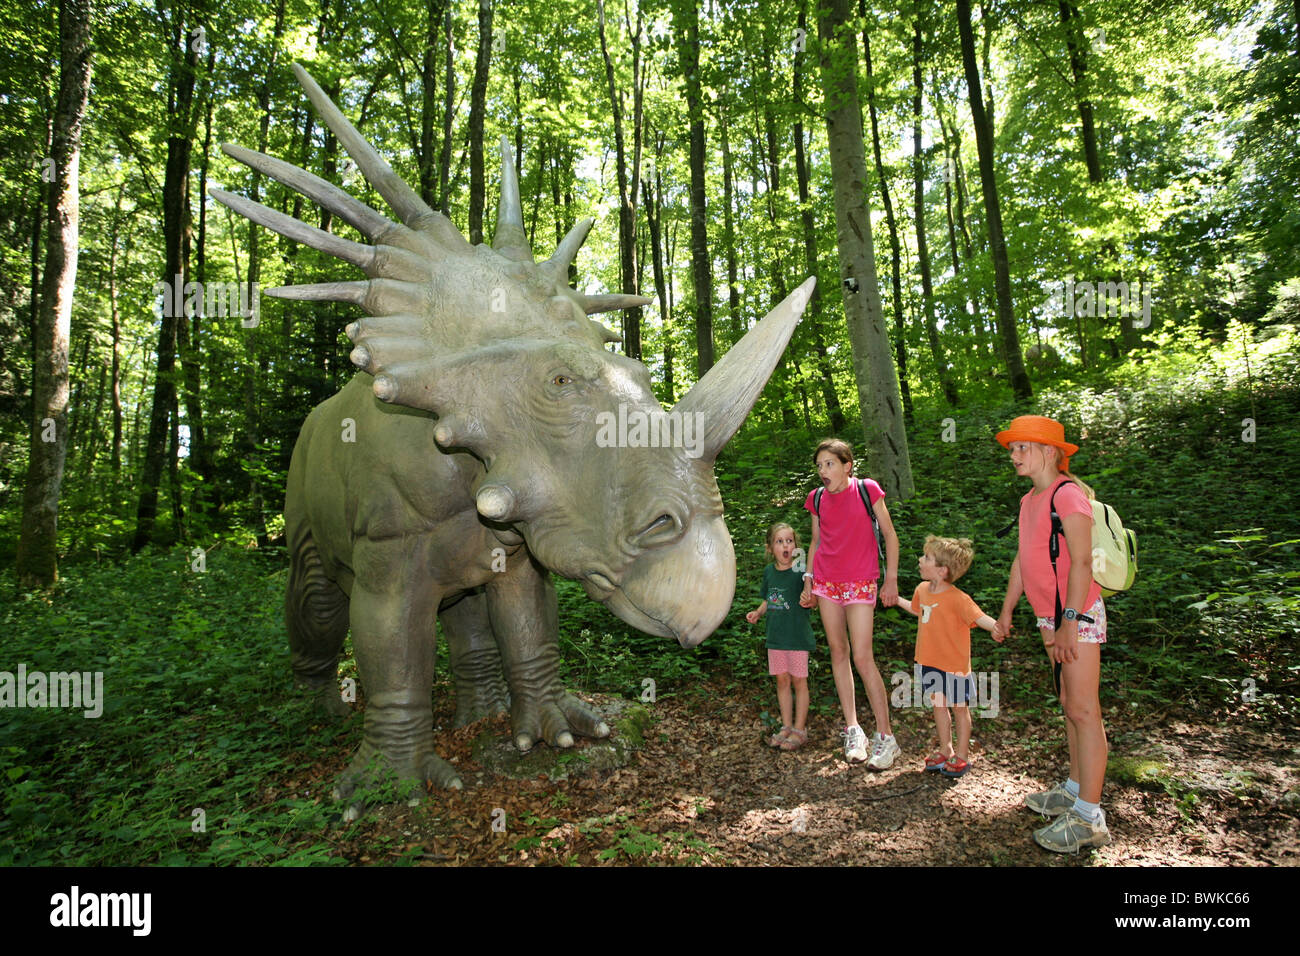 family group children dinosaurs Prehistorical park Reclere Canton Jura Switzerland Europe excursion experie - Stock Image